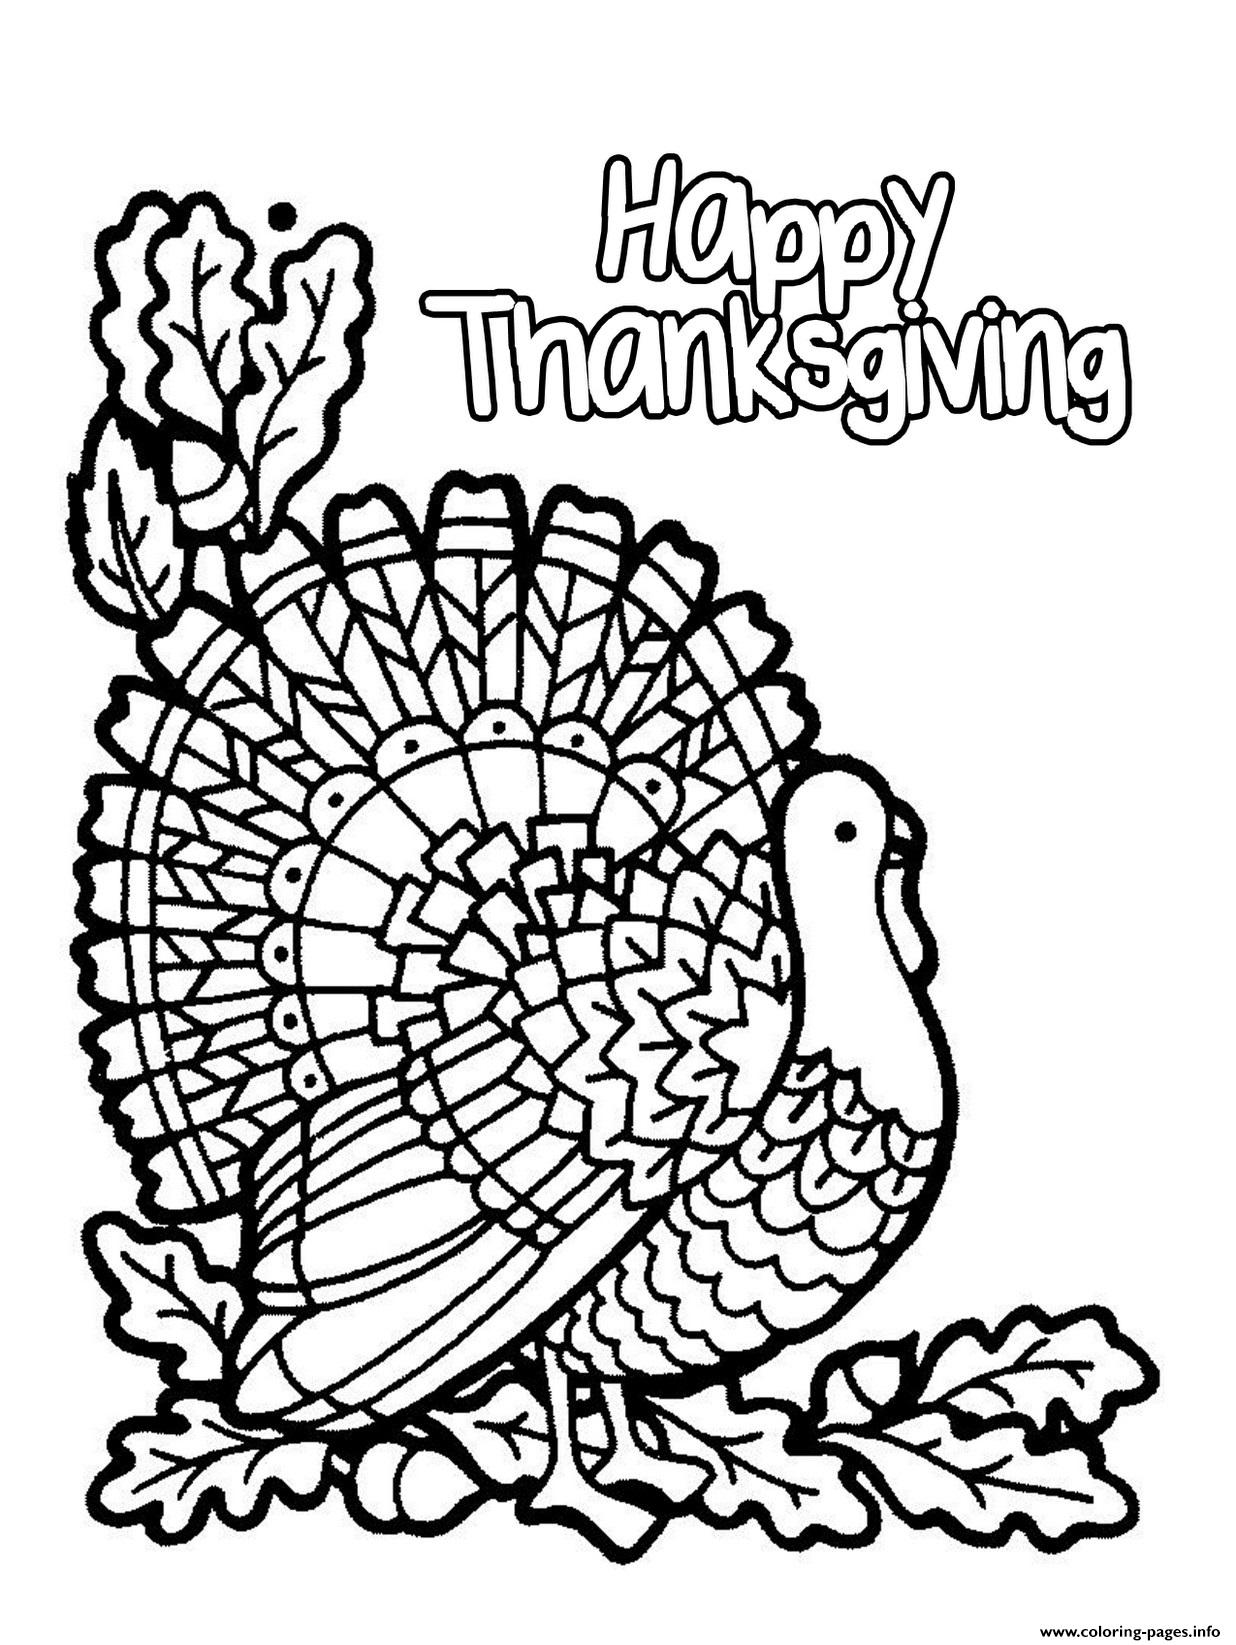 thanksgiving coloring pages already colored - happy thanksgiving turkey coloring pages printable